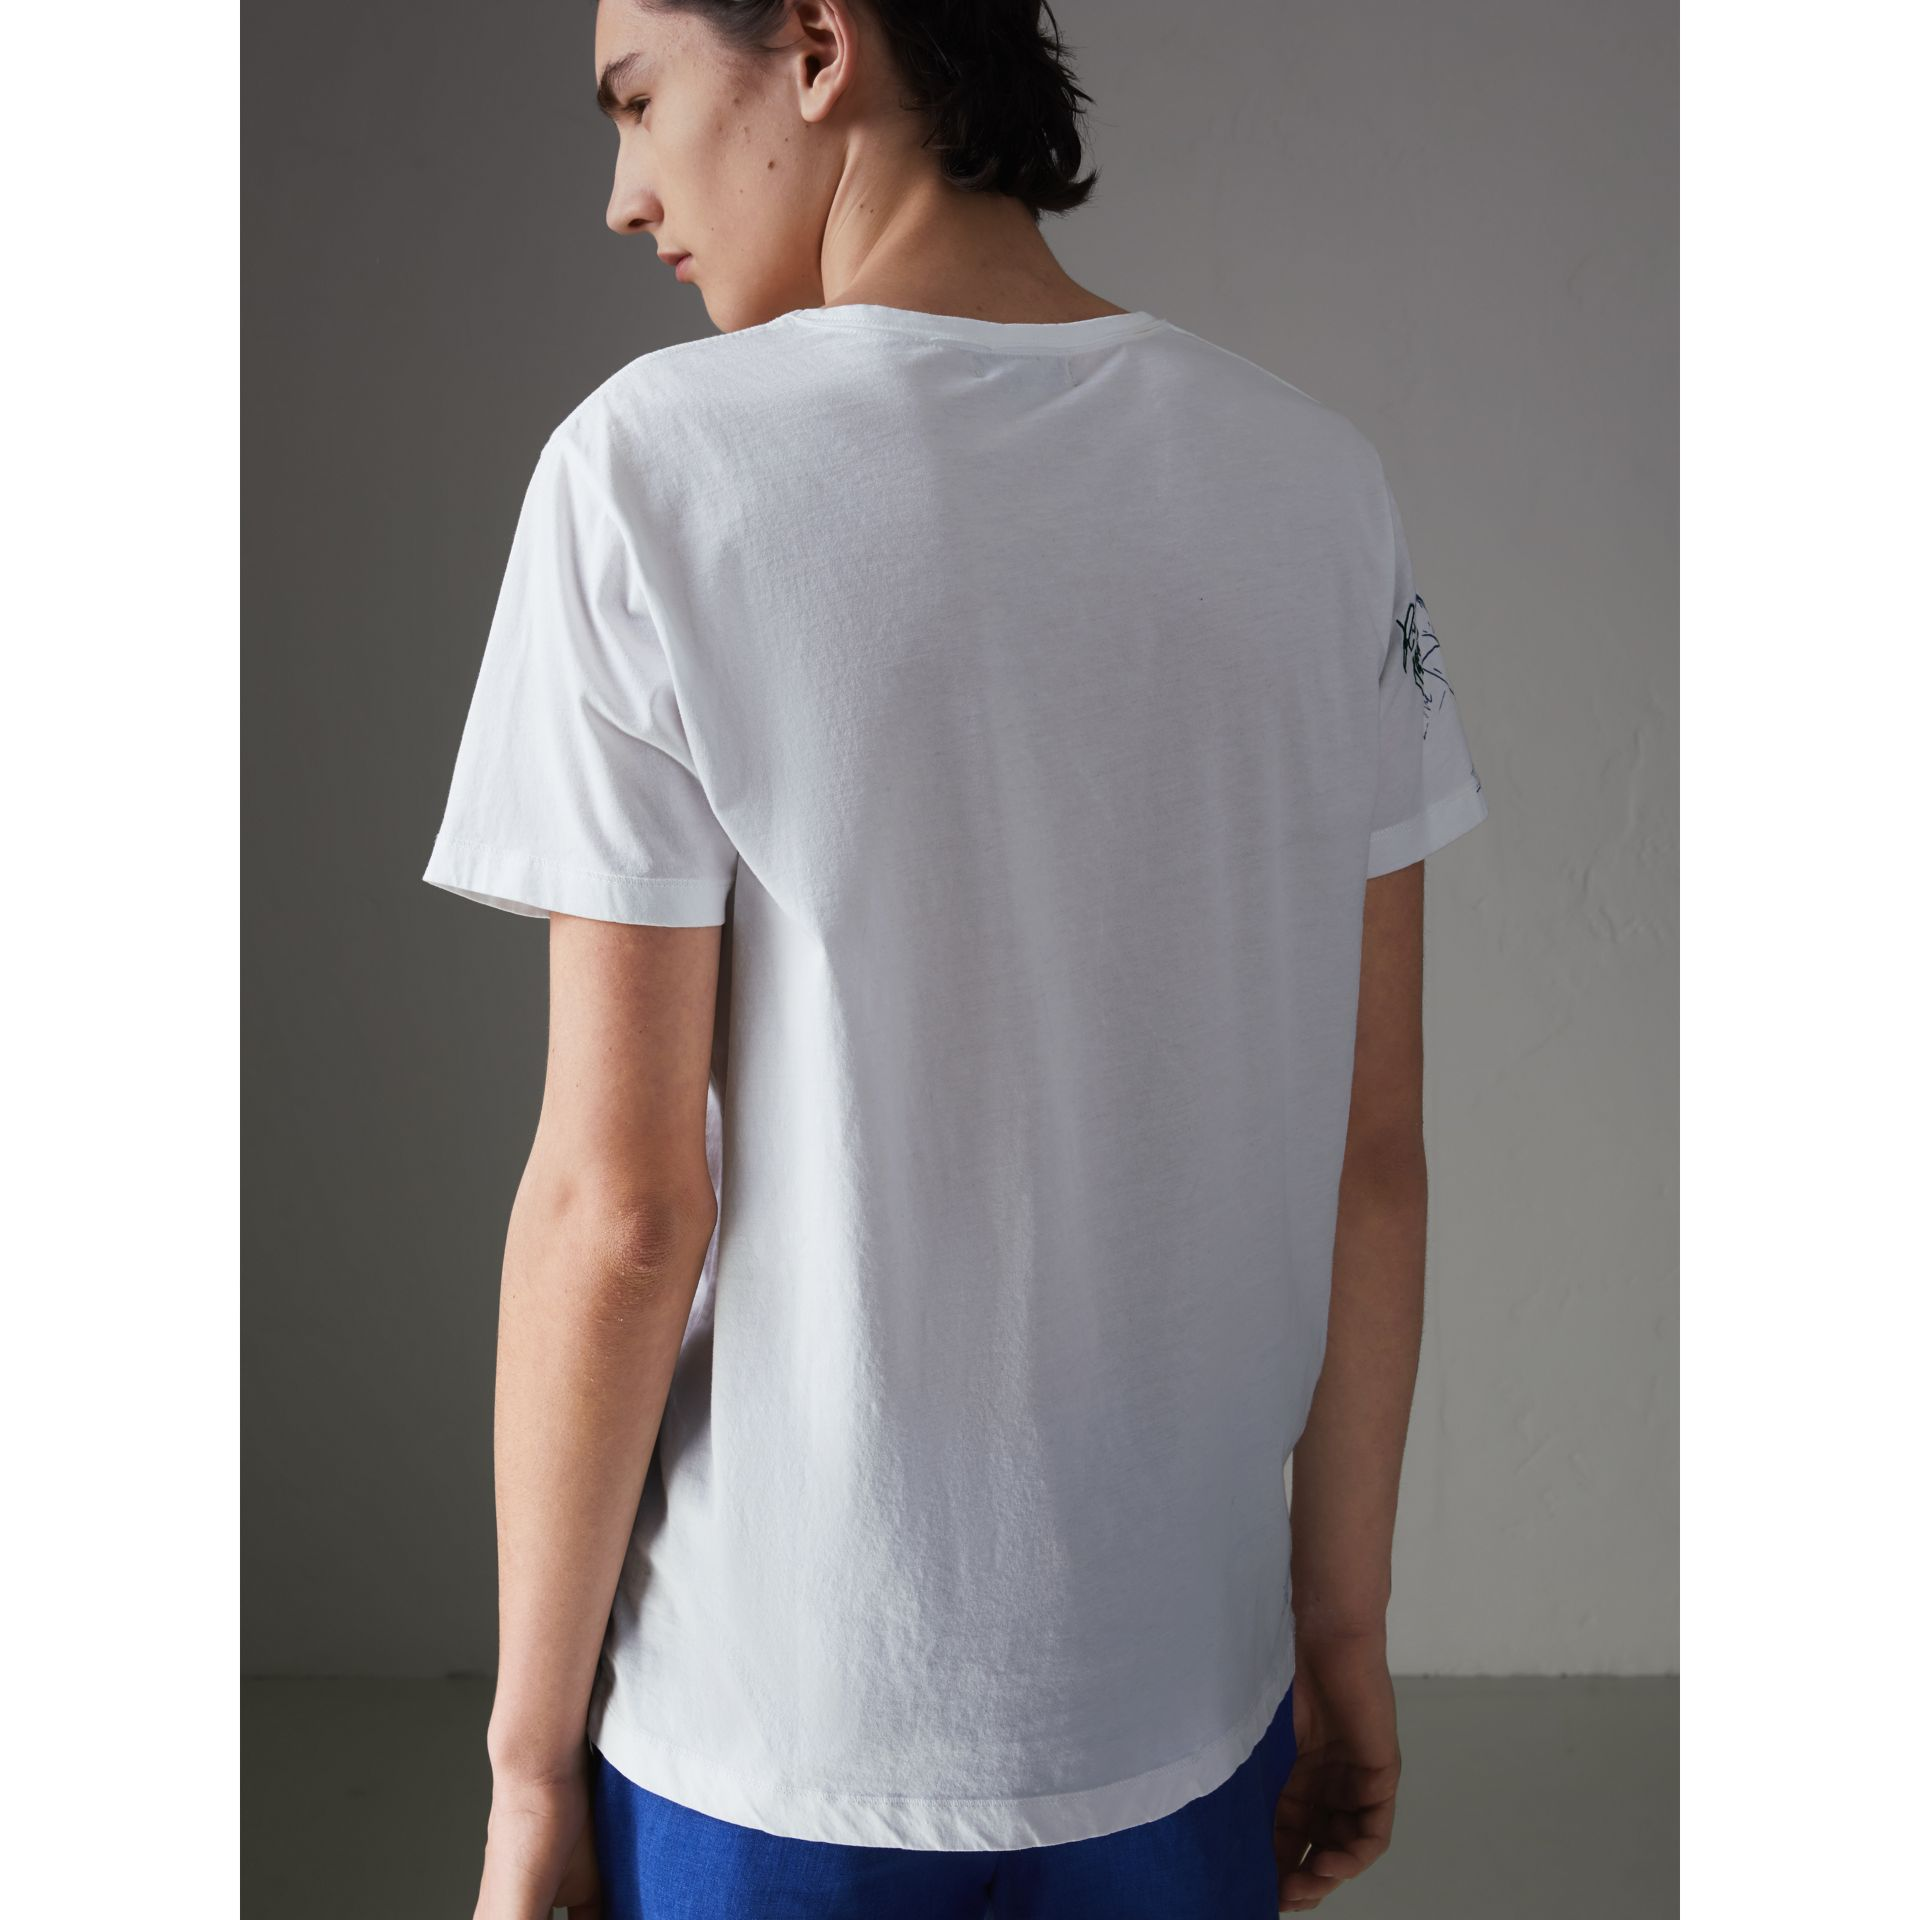 Sketch Print Cotton T-shirt in White - Men | Burberry Australia - gallery image 2